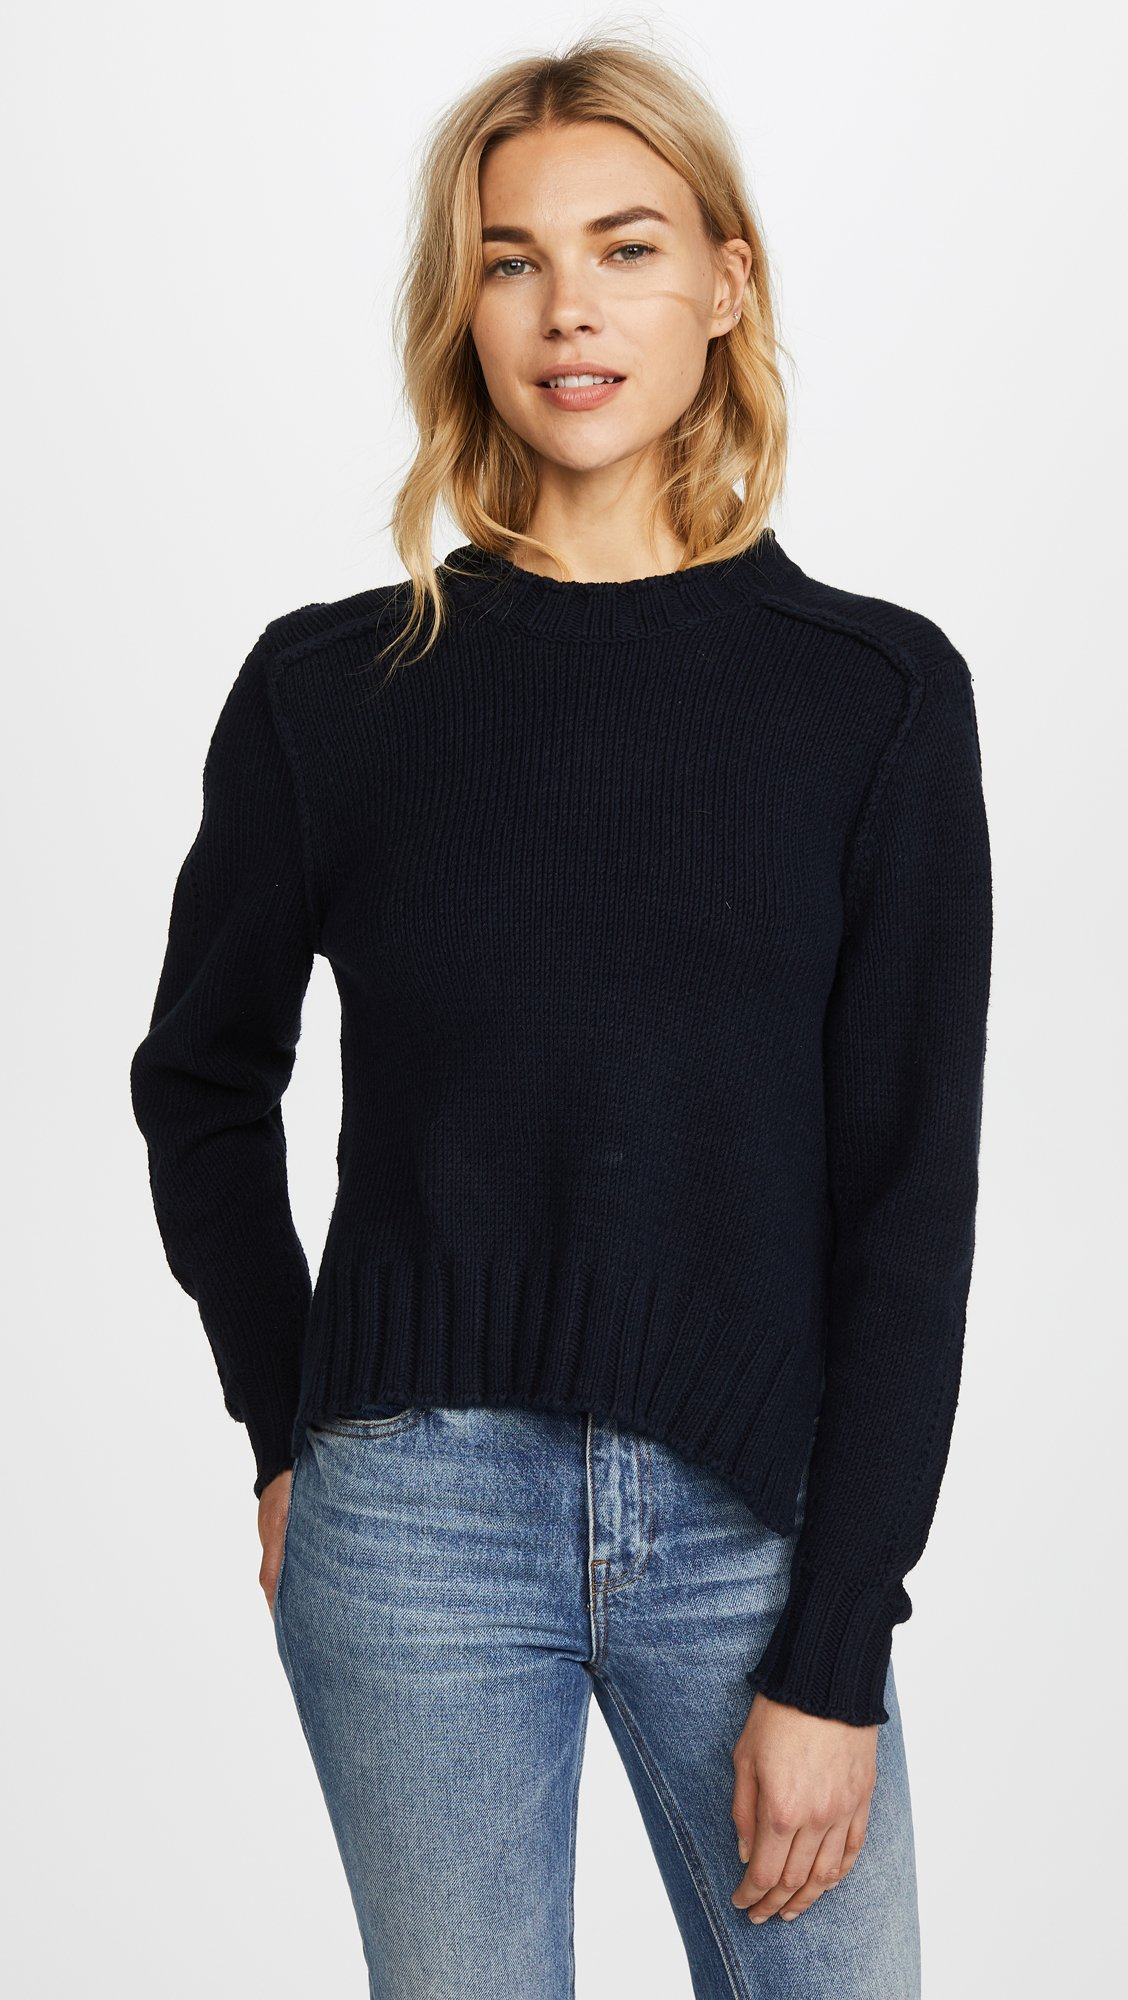 360 SWEATER Women's Kendra Sweater, Midnight, X-Small by 360SWEATER (Image #2)